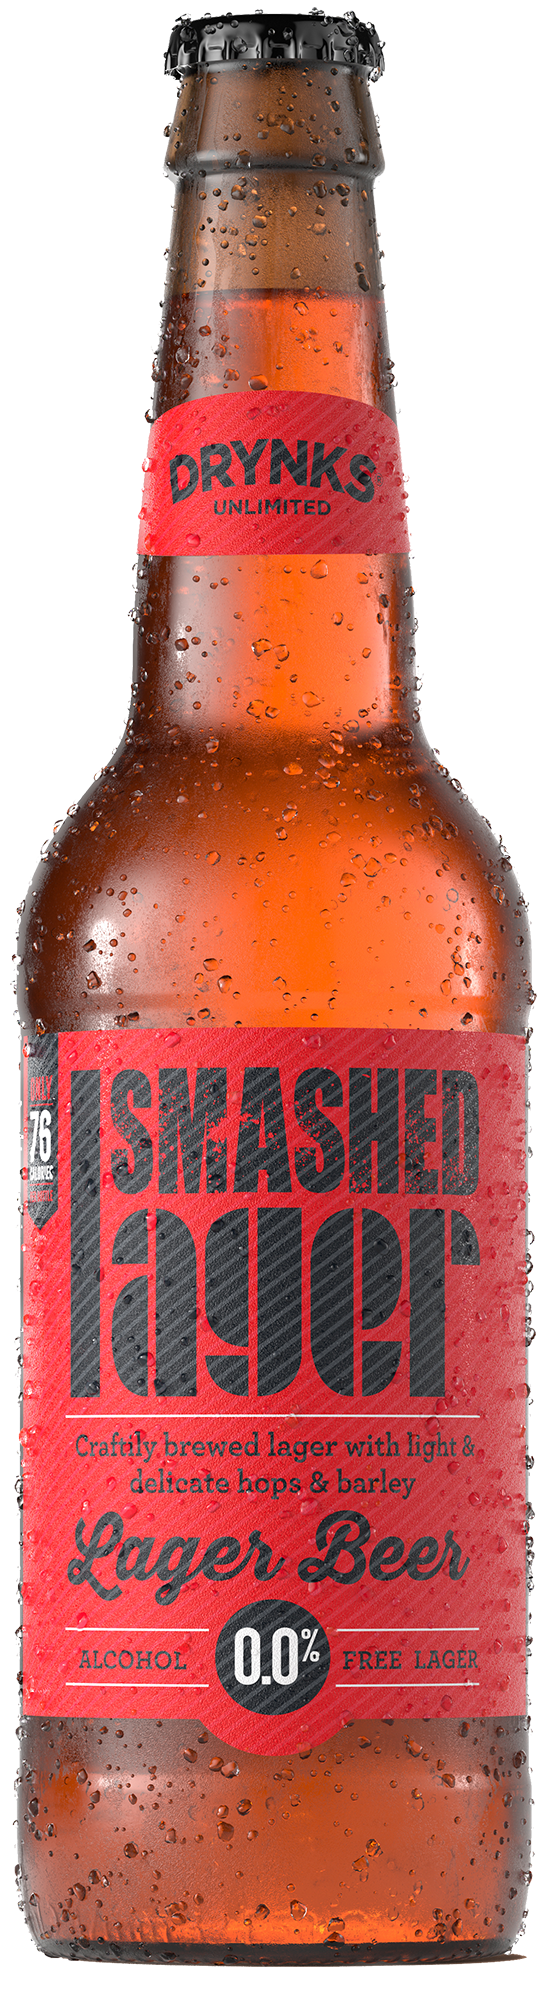 Smashed Lager - Drynks 0.05% 330ml Case of 12